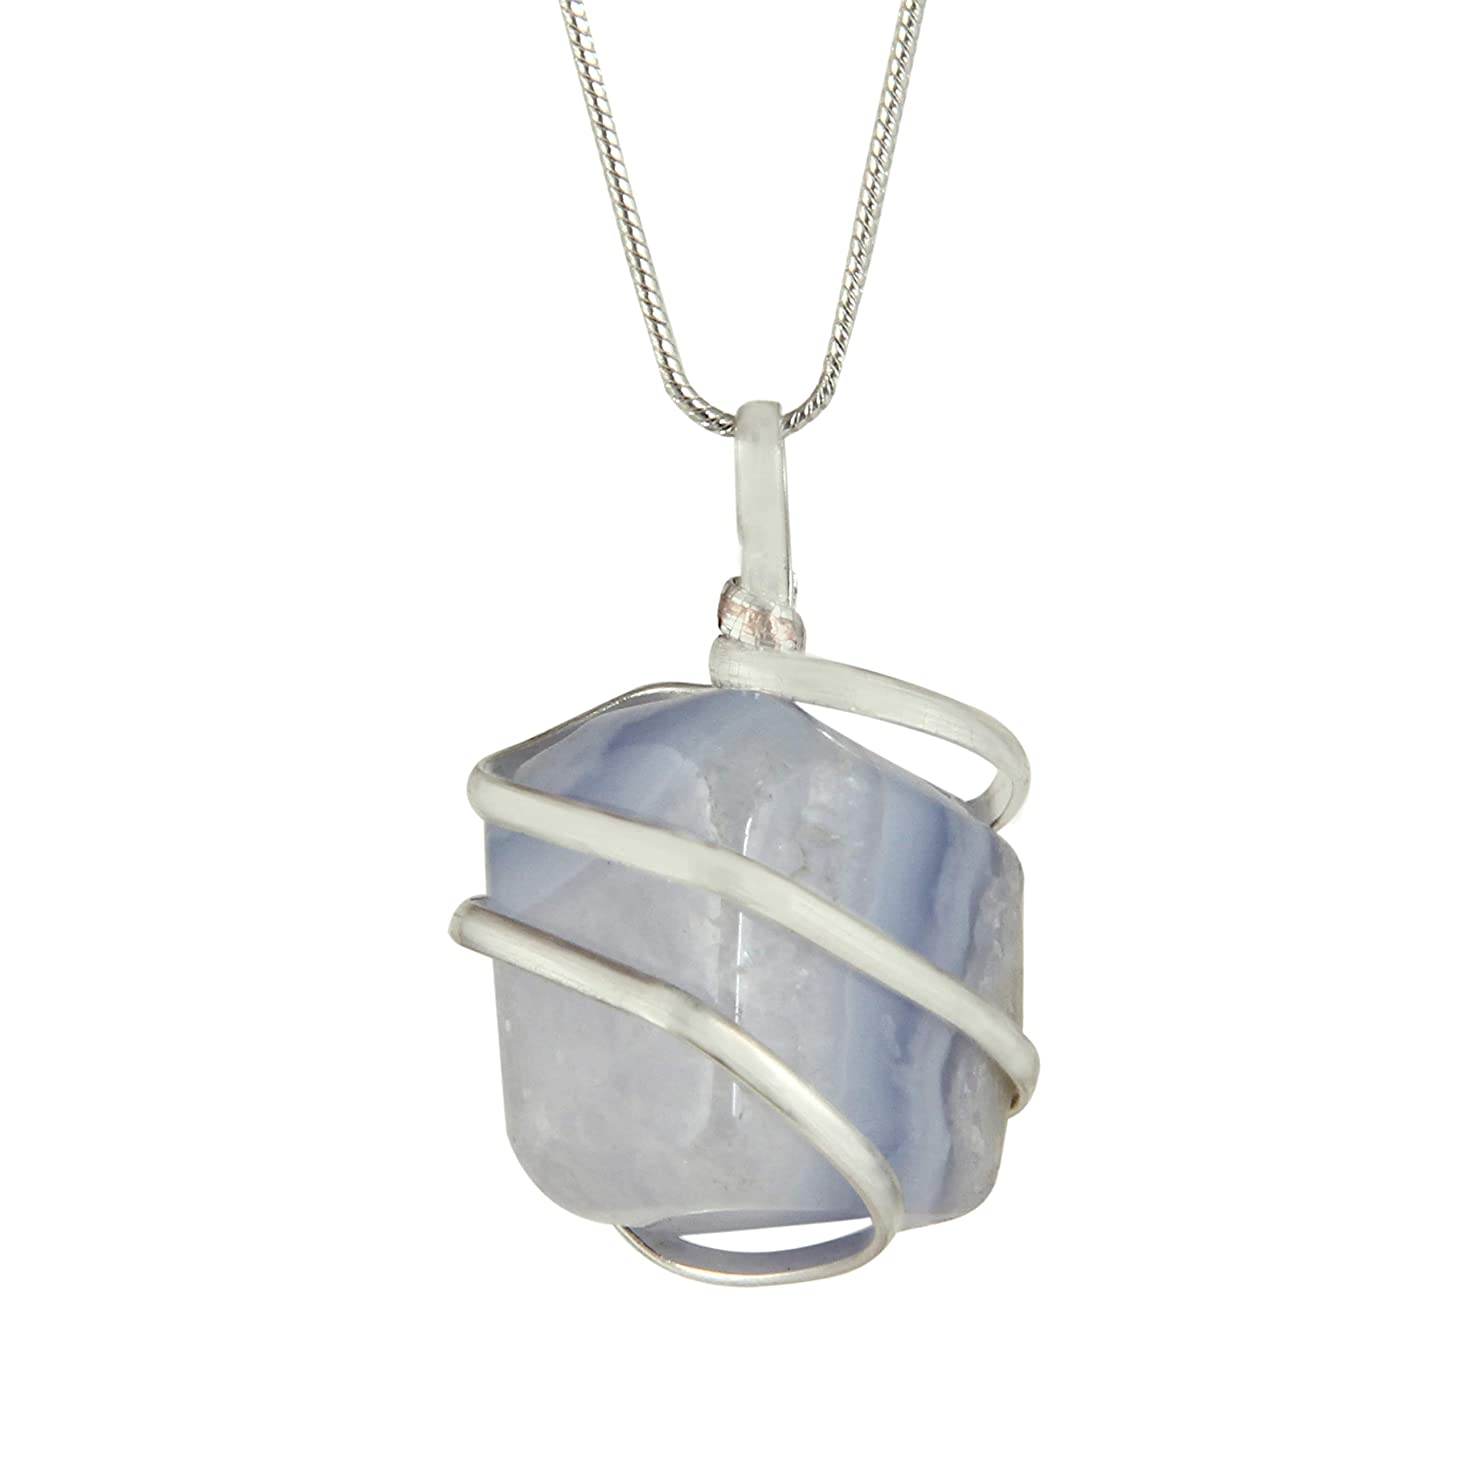 Blue Lace Agate Gemstone Pendant Necklace - Natural Crystal Healing   Stone of Encouragement and Support  Throat Chakra & Communication Aid   for Security and Self-Confidence  Jewelry for Men & Women